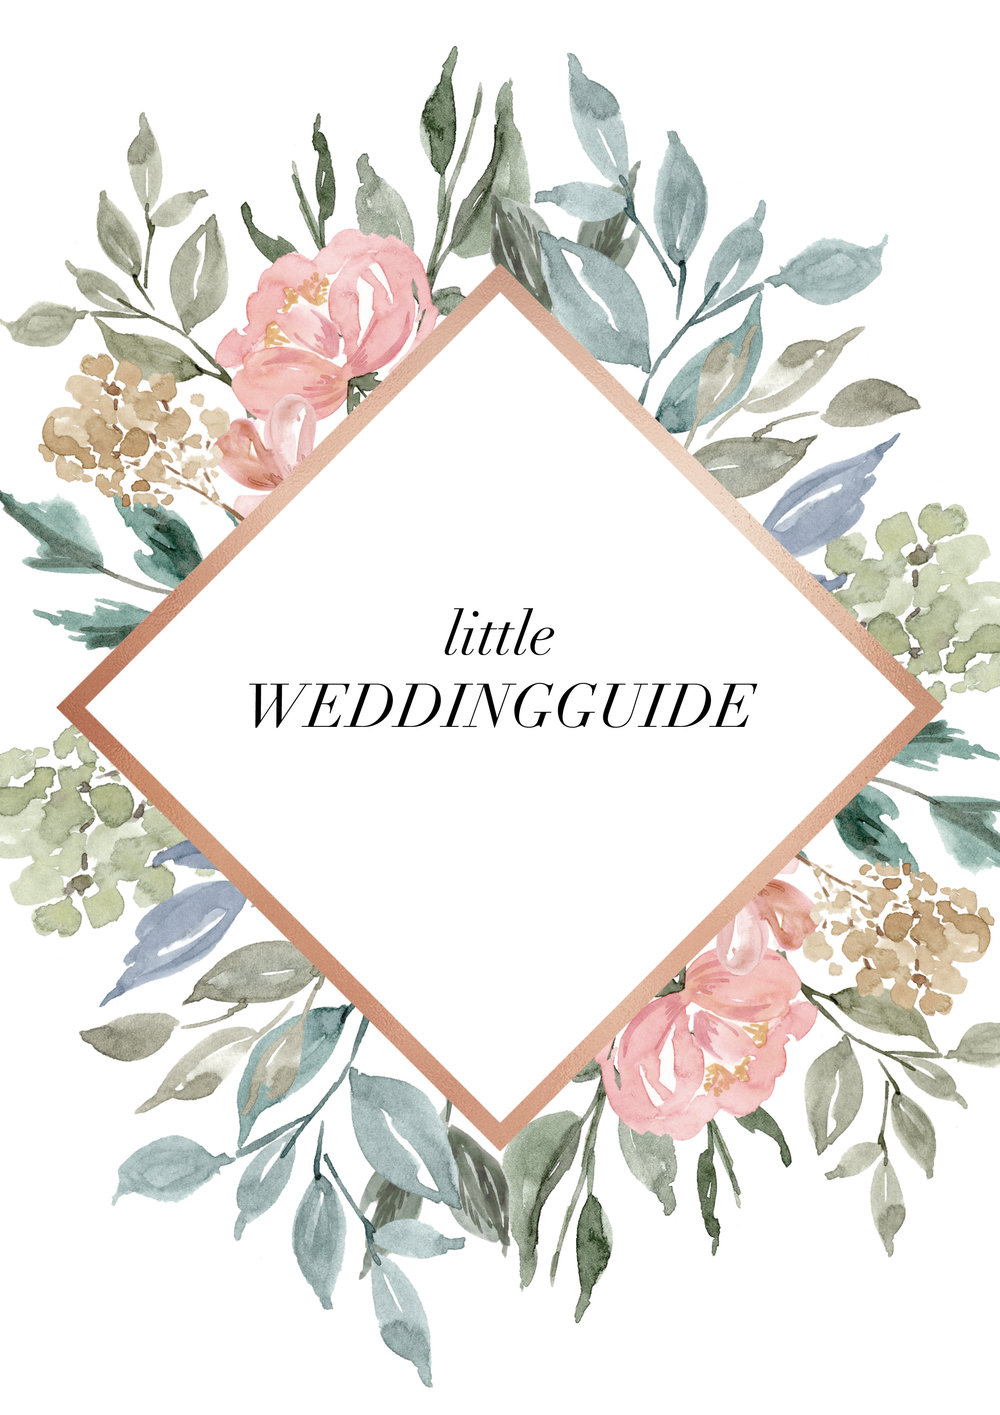 littleWeddingGuidebyOhella_Blogpost.jpg